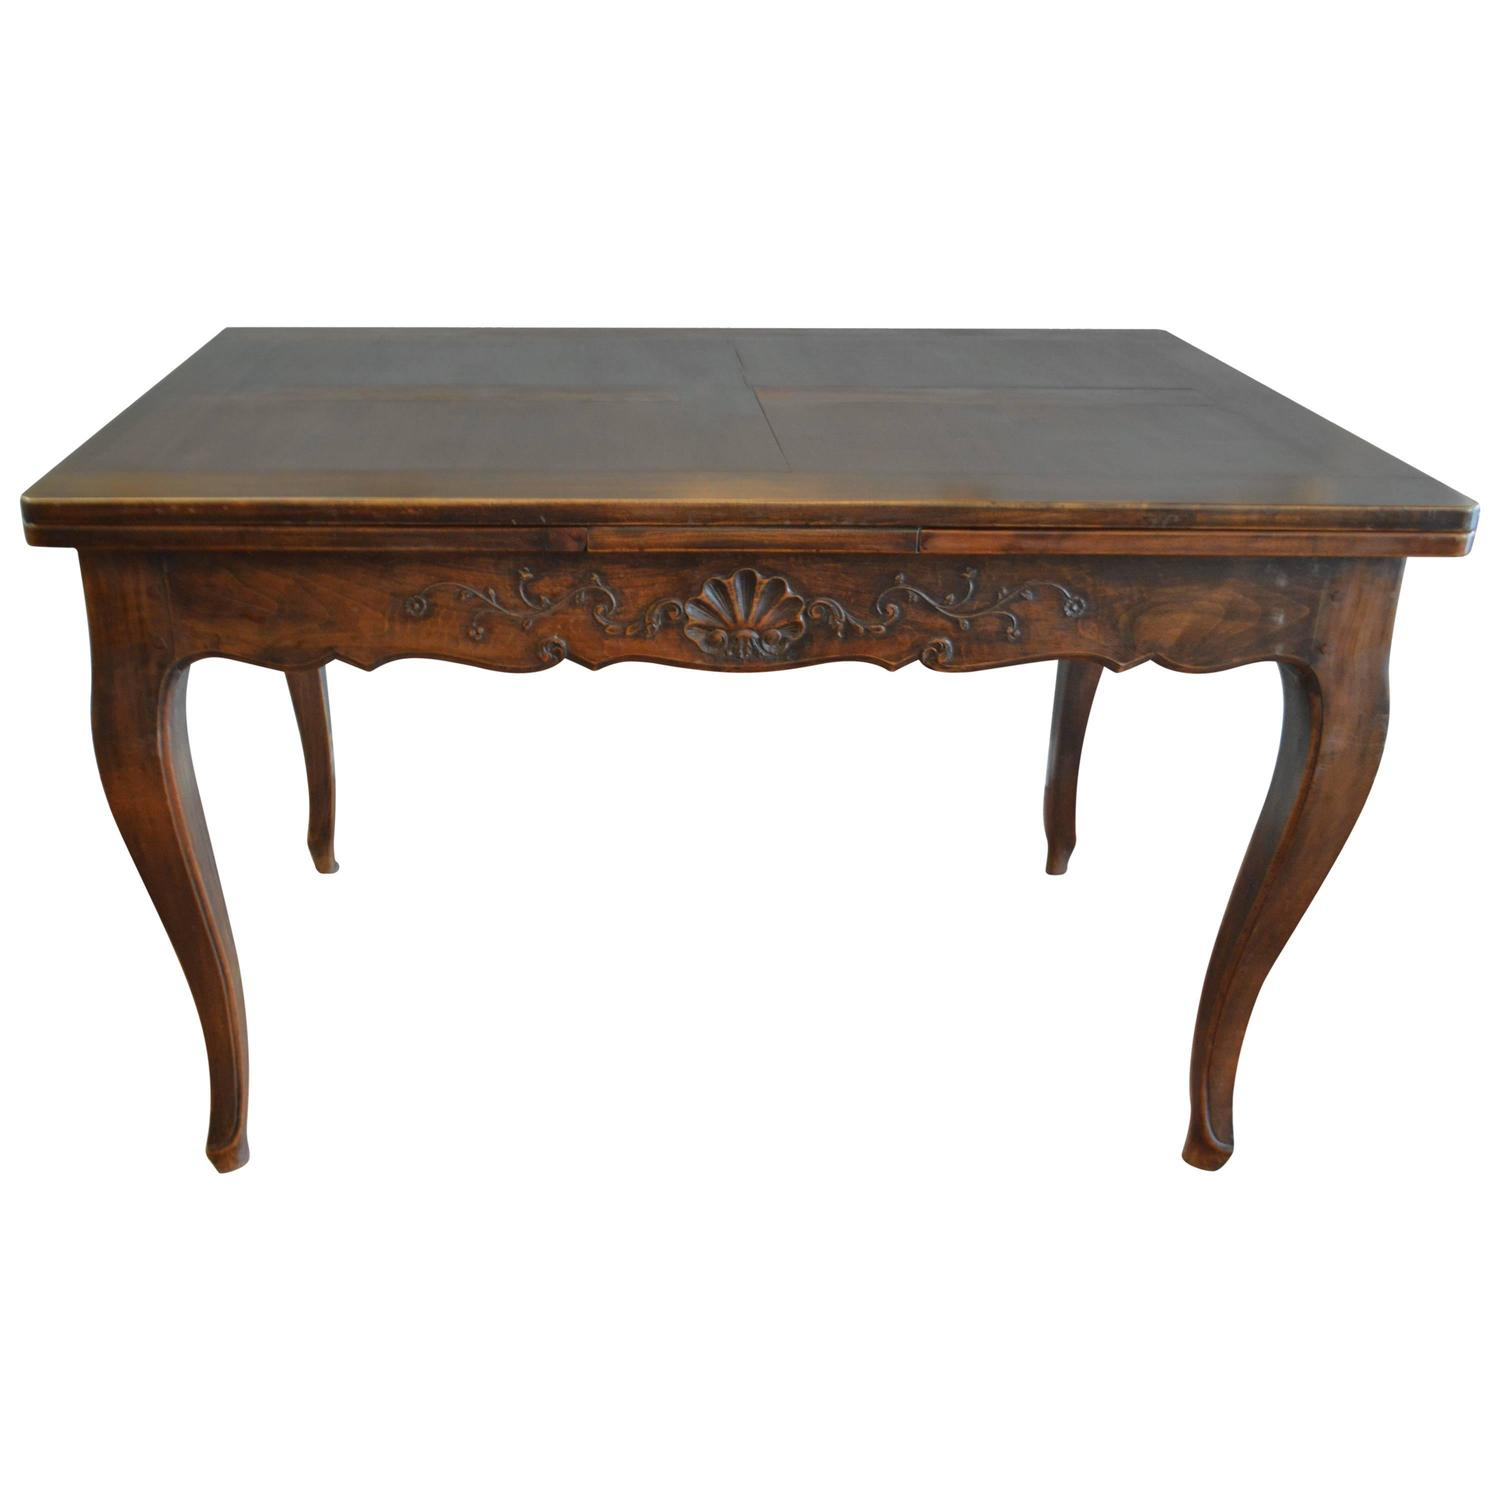 French country style walnut dining table at 1stdibs for Country style dining table